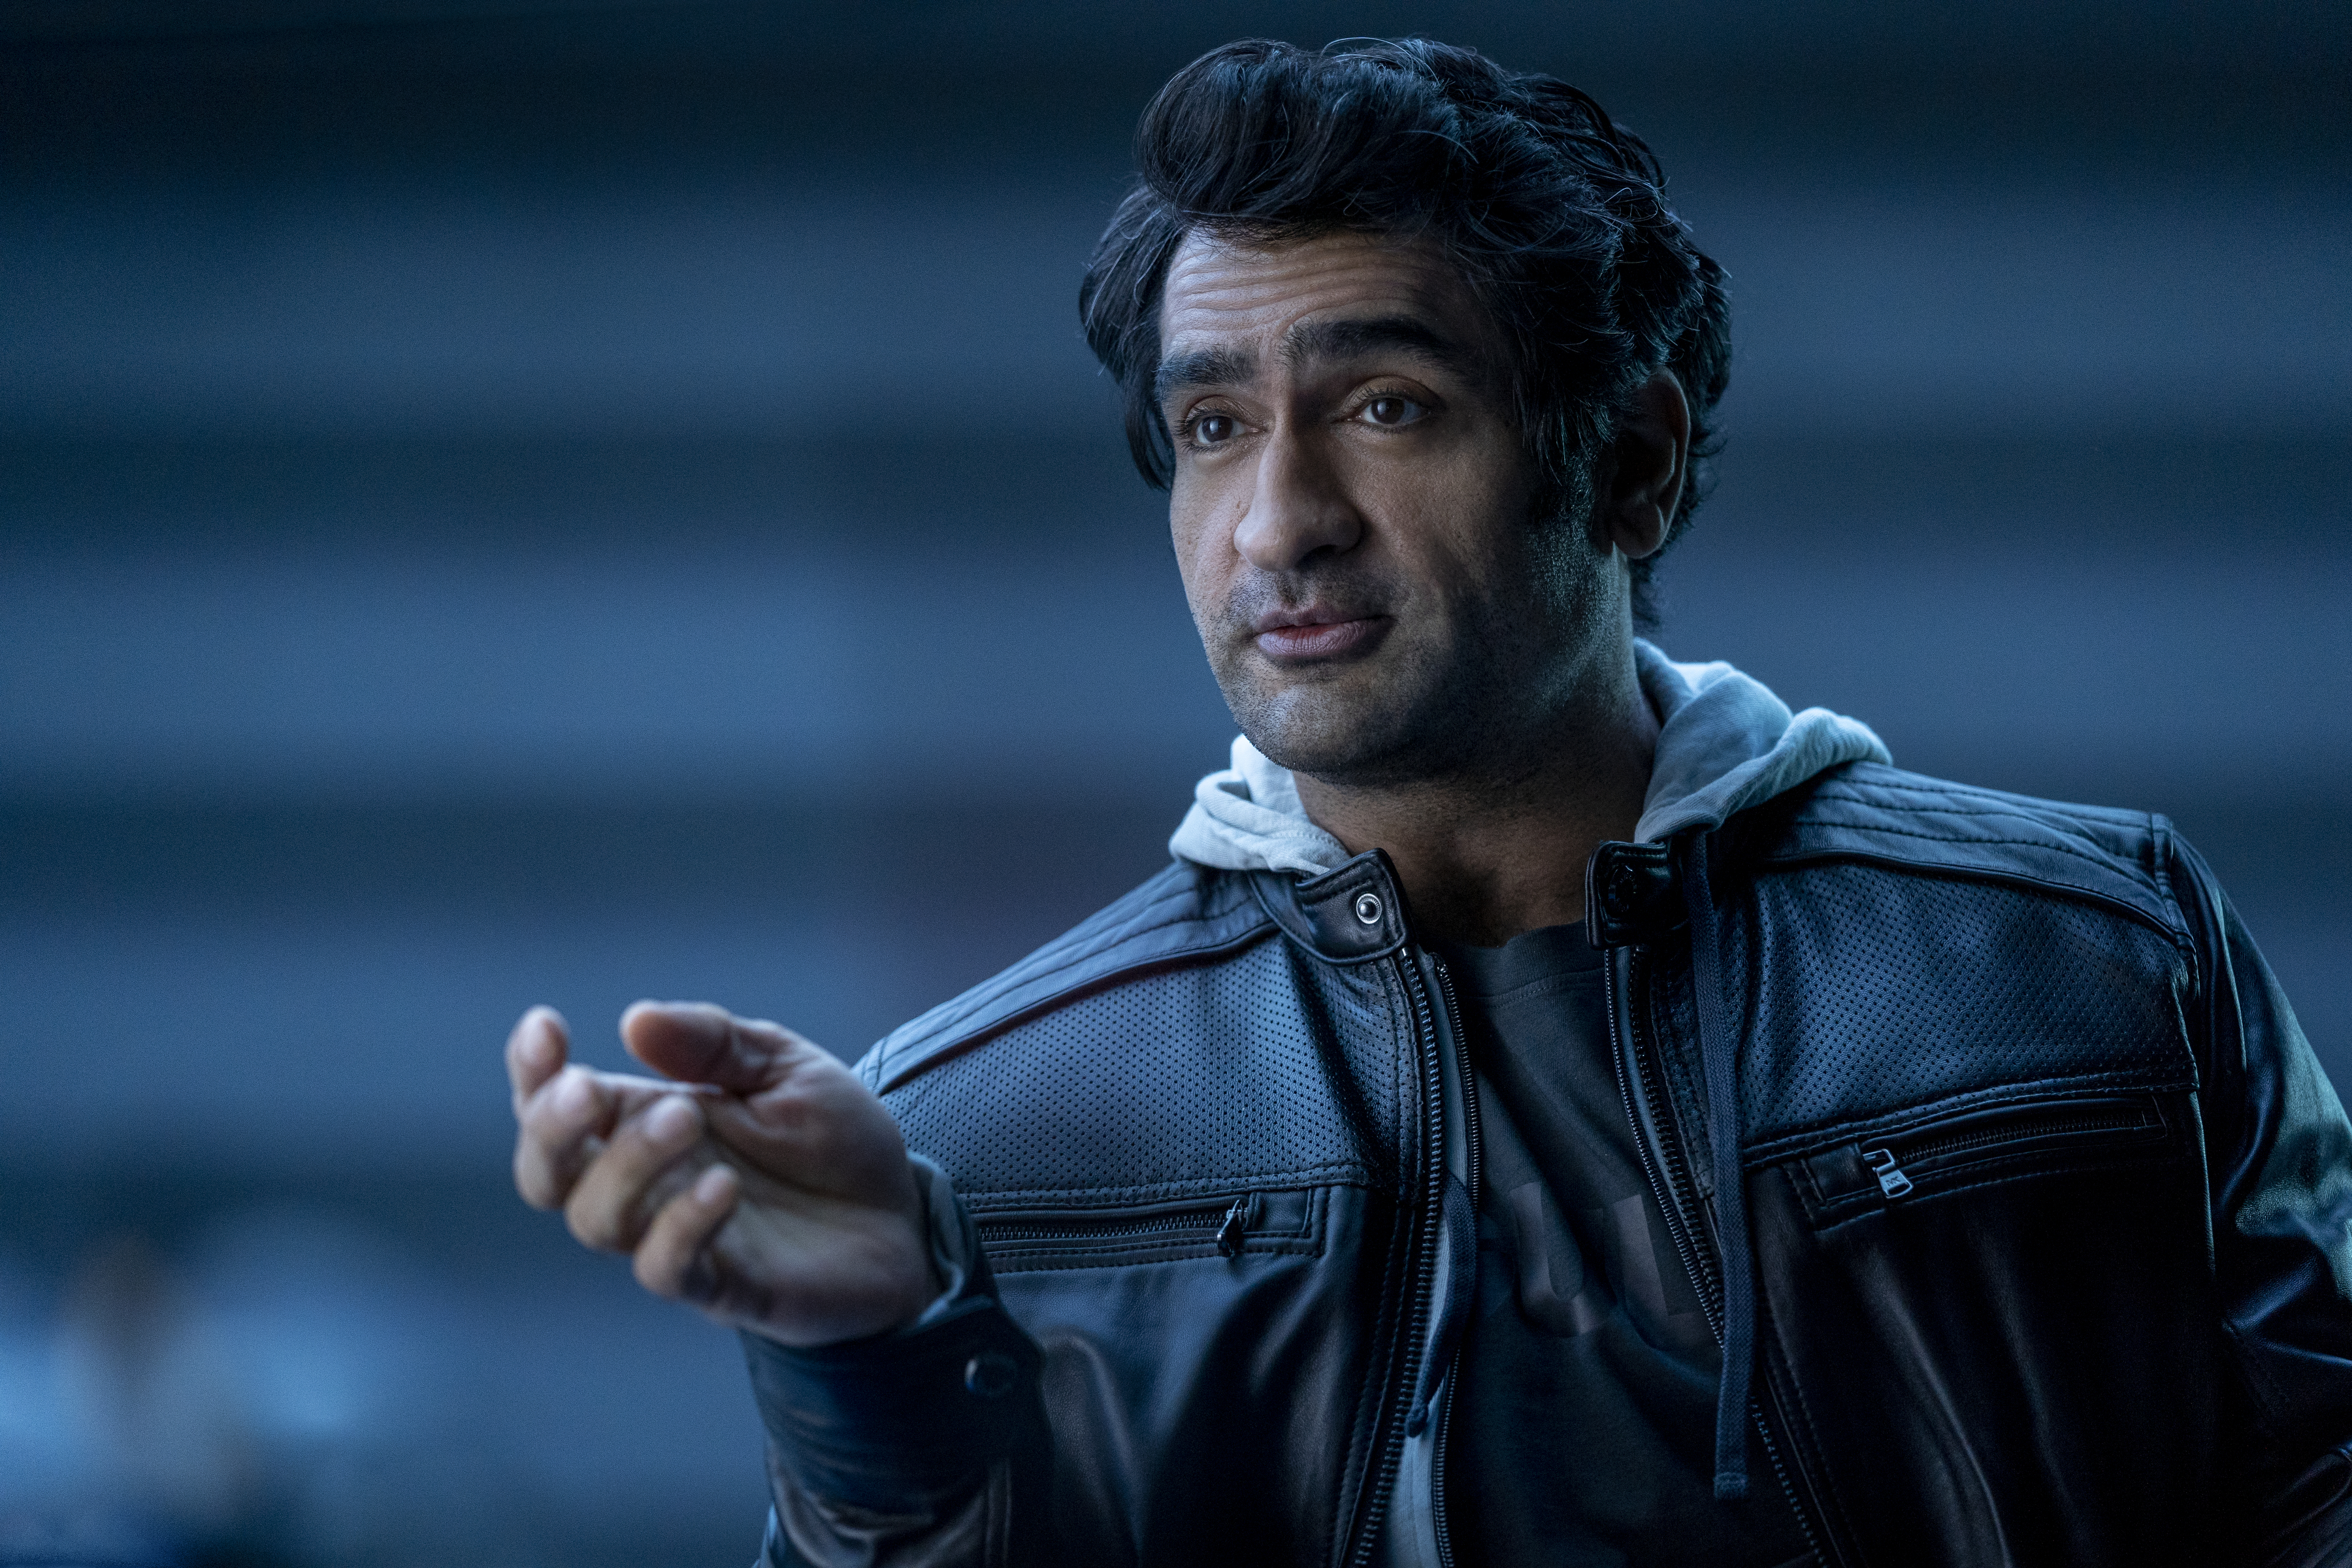 DEATH TO 2020 (L to R) KUMAIL NANJIANI as BARK MULTIVERSE in DEATH TO 2020 Cr. SAEED ADYANI/NETFLIX © 2020